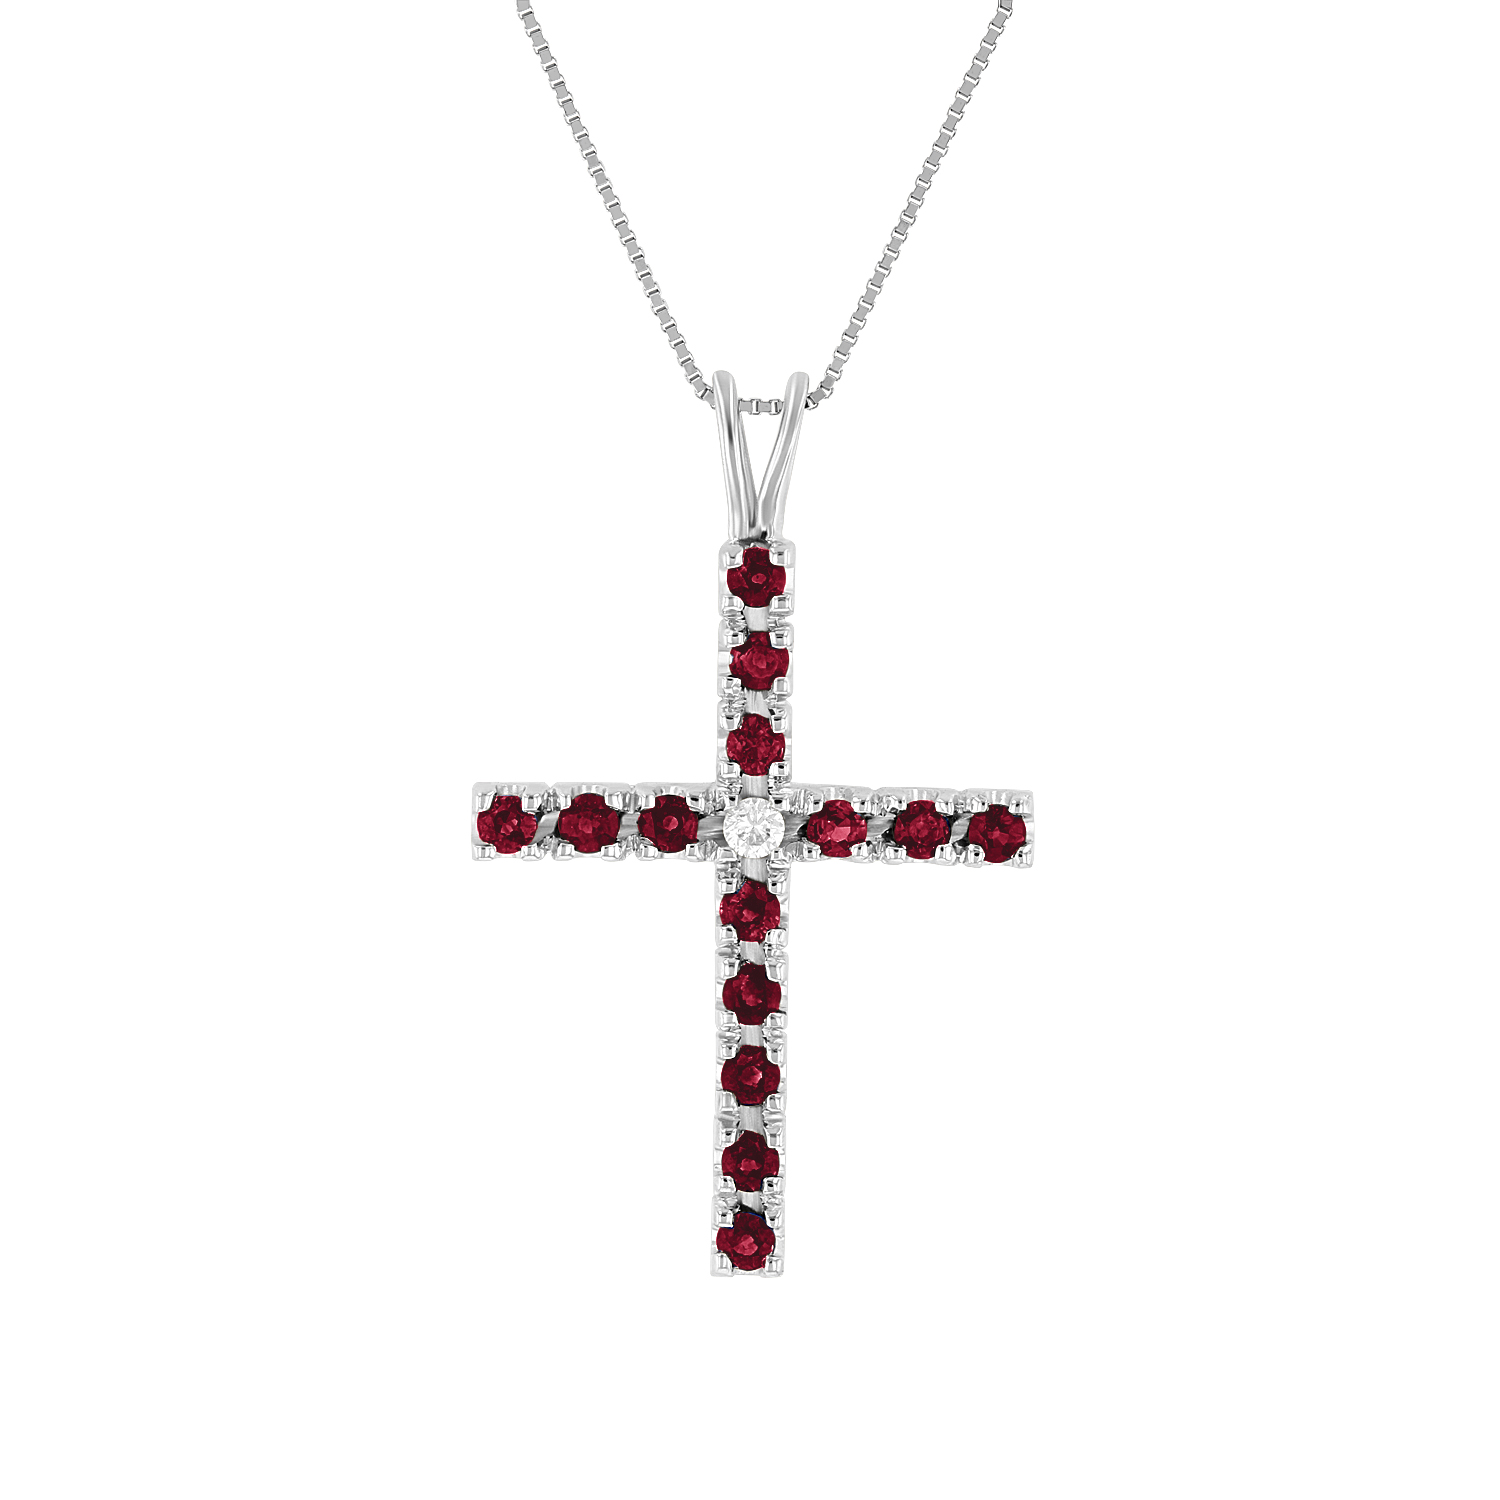 View 0.79ctw Diamond and Ruby Cross Pendant in 14k White Gold